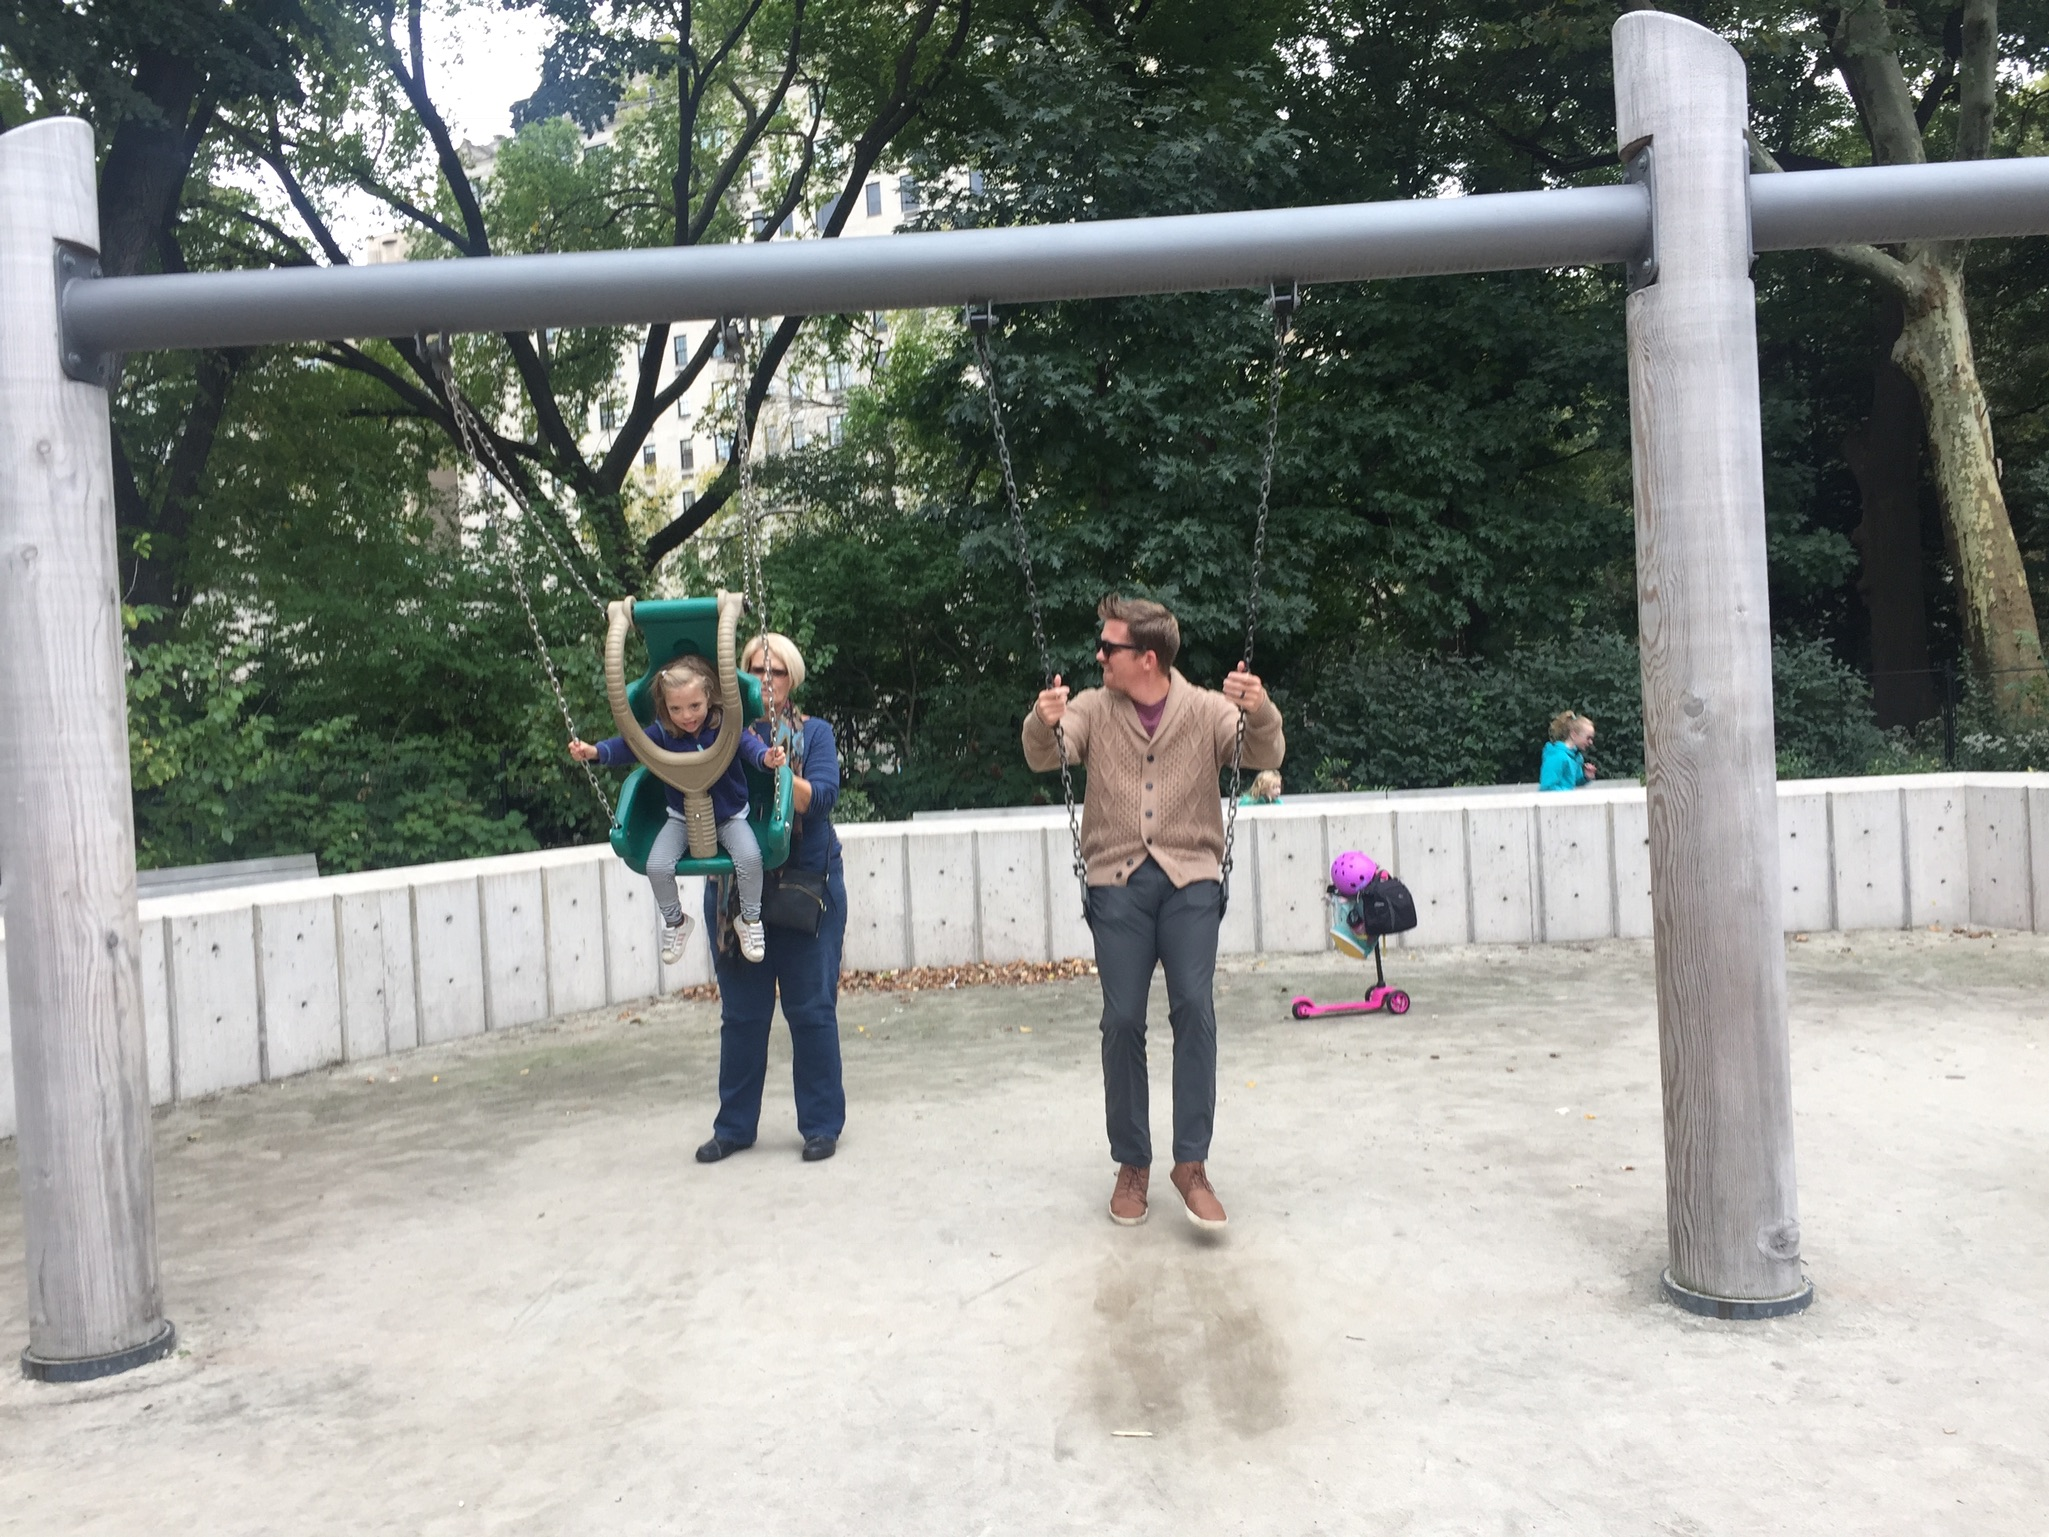 Playing in Central Park